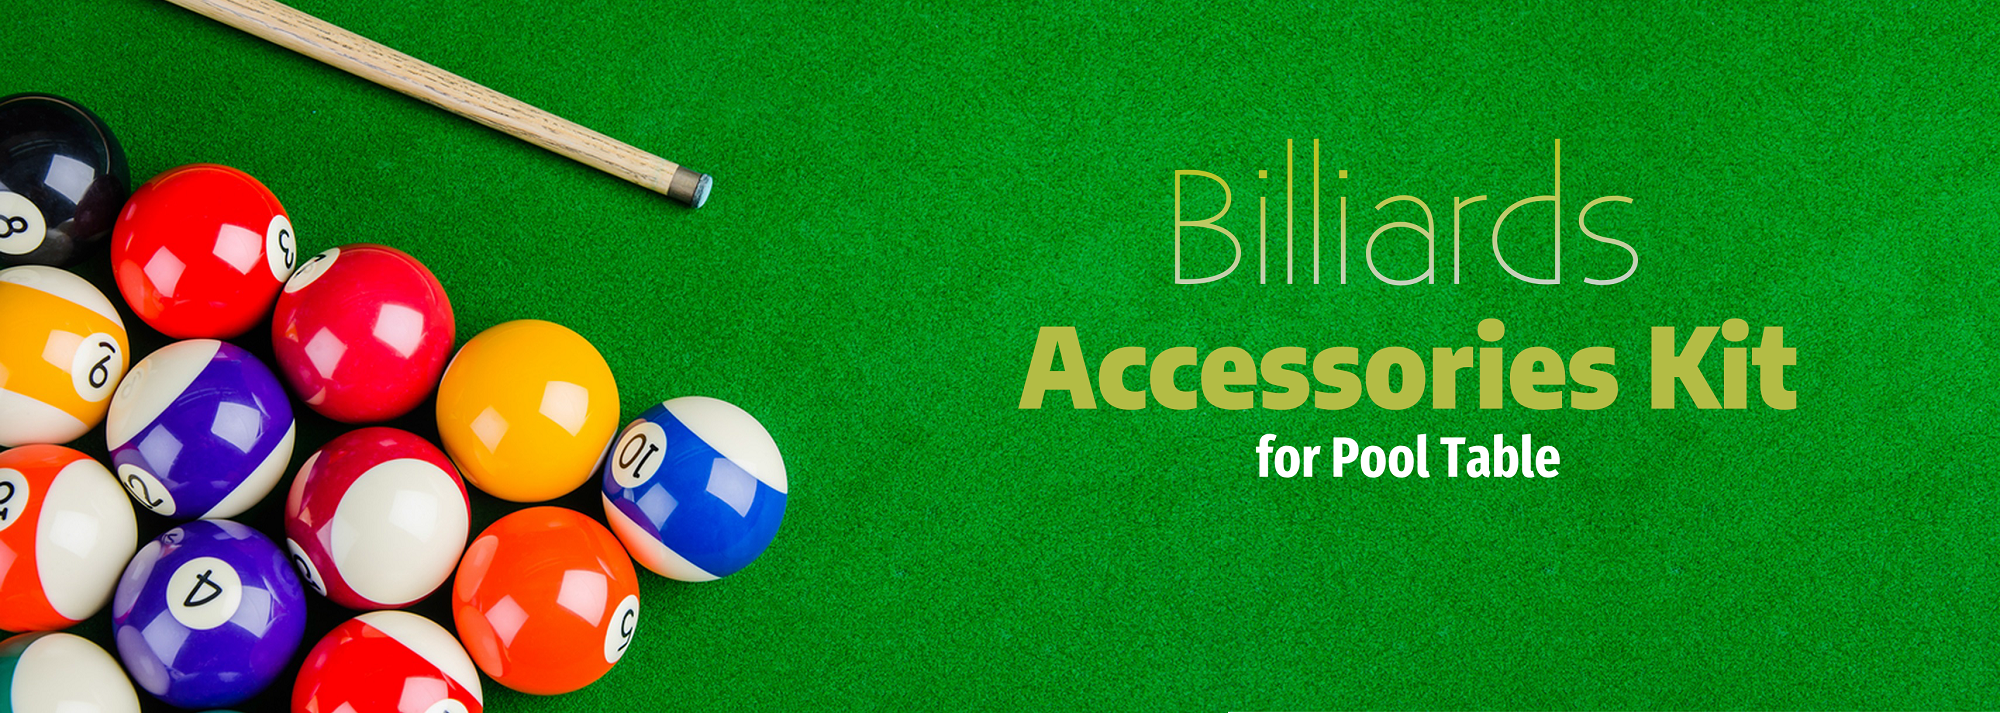 Piece Billiards Accessories Kit For Pool Table Buy Online - Pool table description